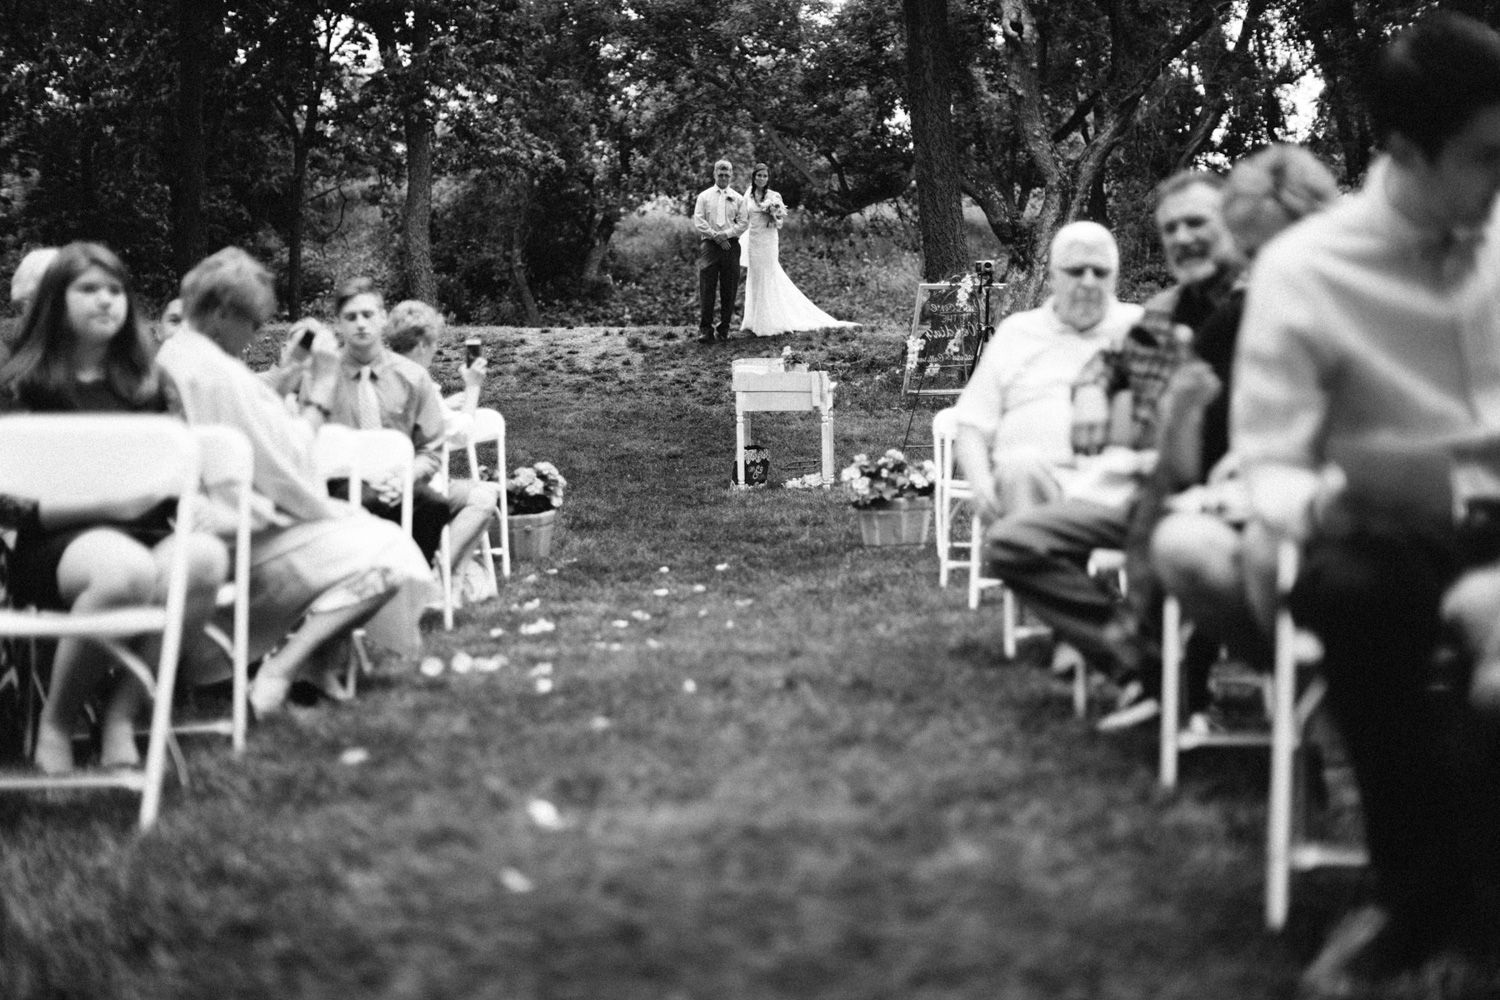 Outdoor_Wedding_SiouxFalls_MaryJoWegnerArboretum_Photographer_Calli&Jon_076.jpg